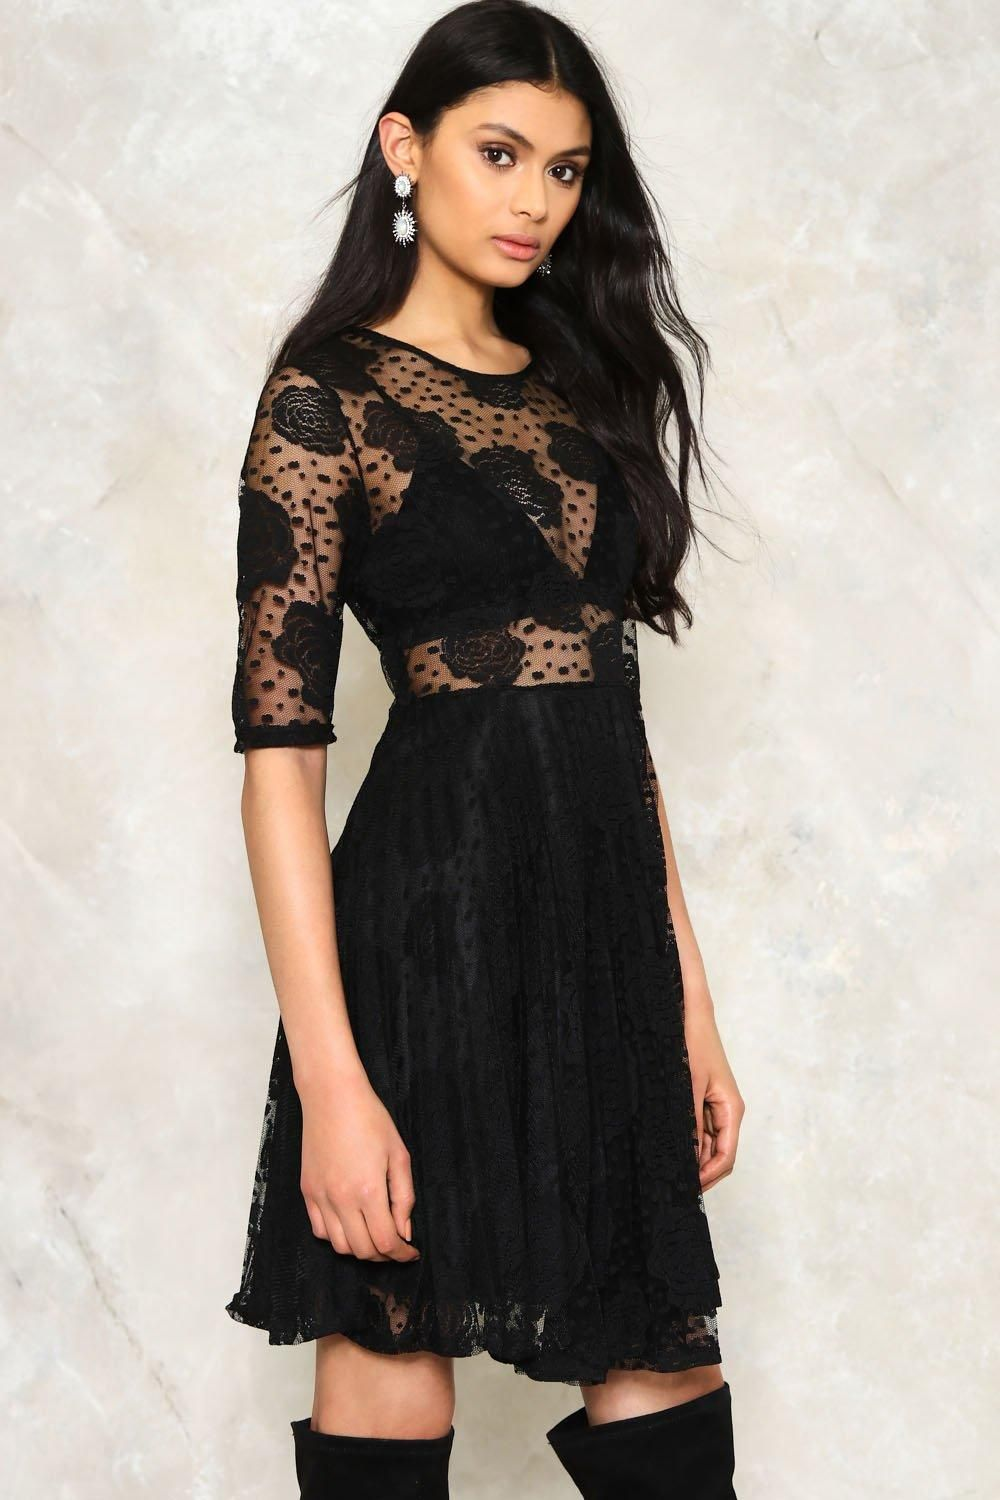 Lace dress rose  Rose to Fame Lace Dress  Lace Flare and The oujays